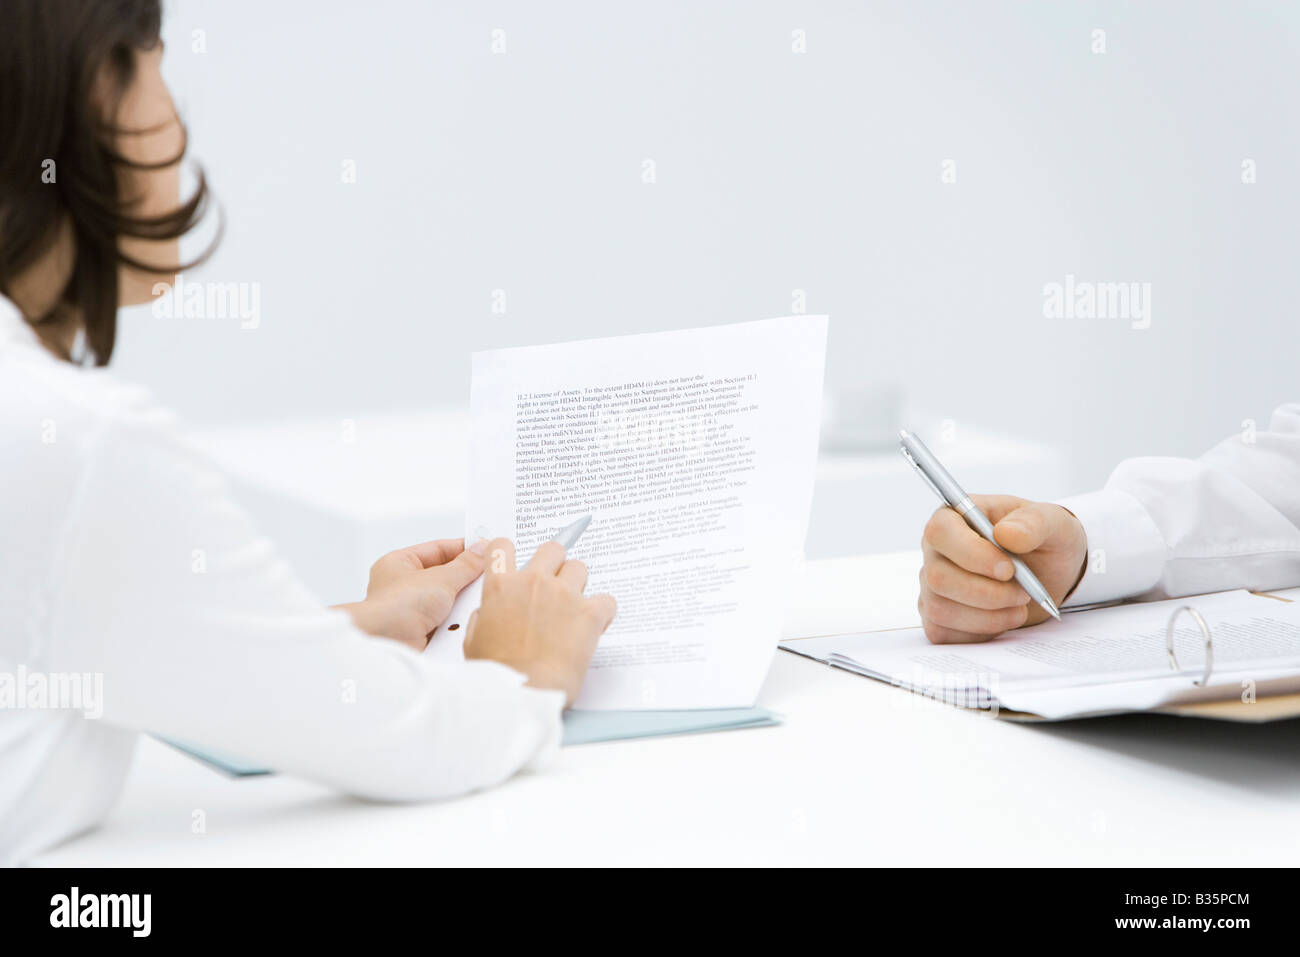 Woman scrutinizing contract, man editing document in binder, cropped view - Stock Image